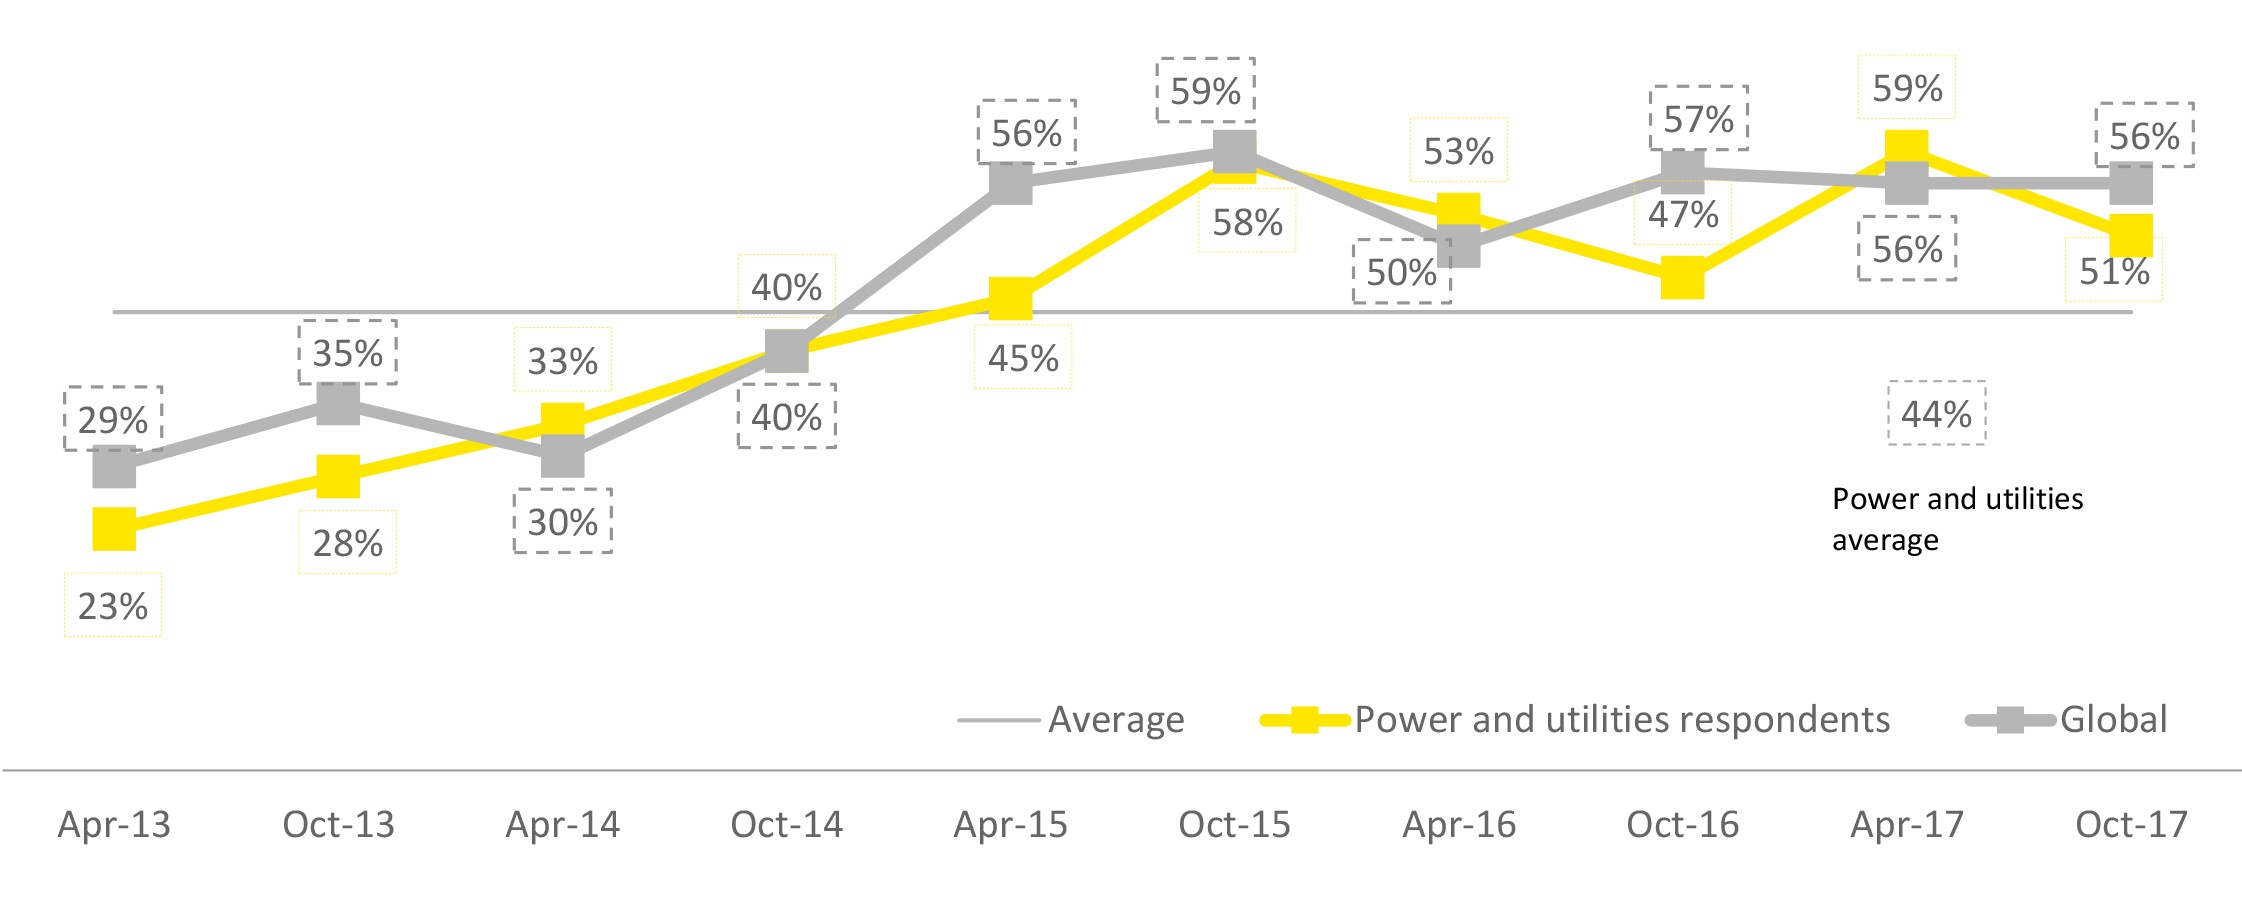 EY - What is your perspective of the state of the global economy today?